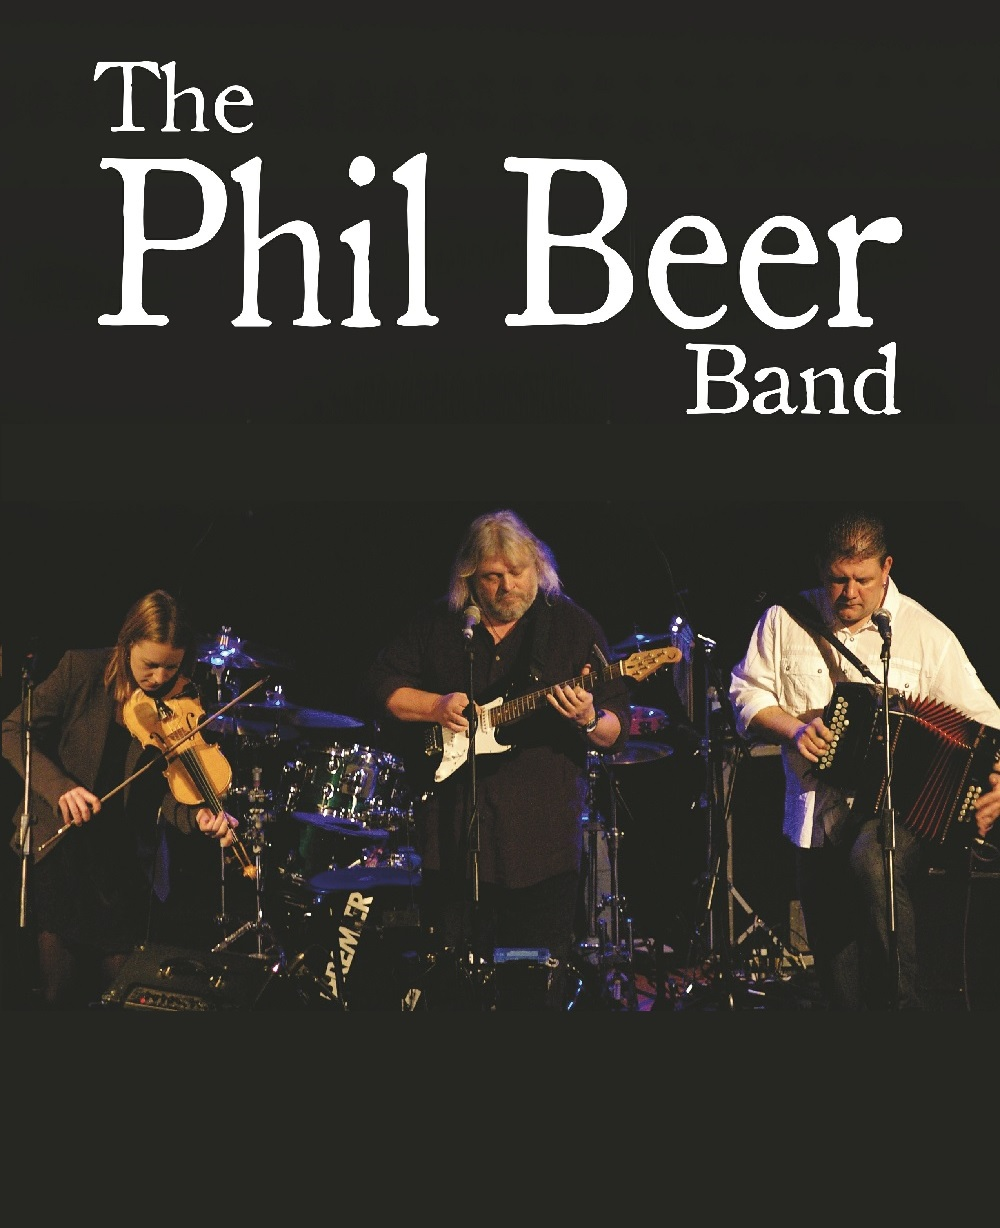 Phil Beer Band